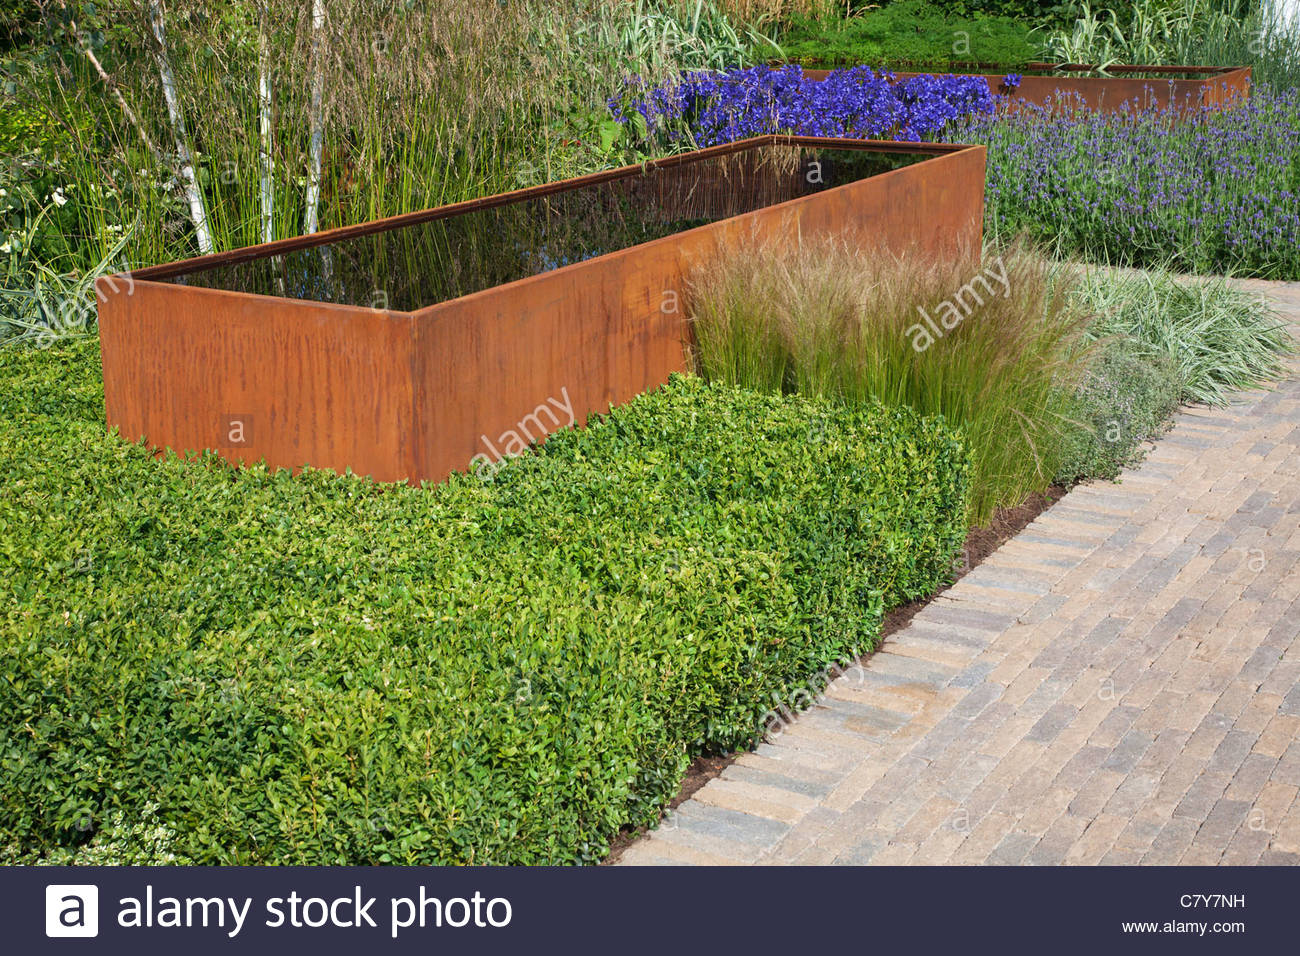 Contemporary Garden With Rusted Corten Steel Water Trough And Green Foliage  Planting. RHS Hampton Court